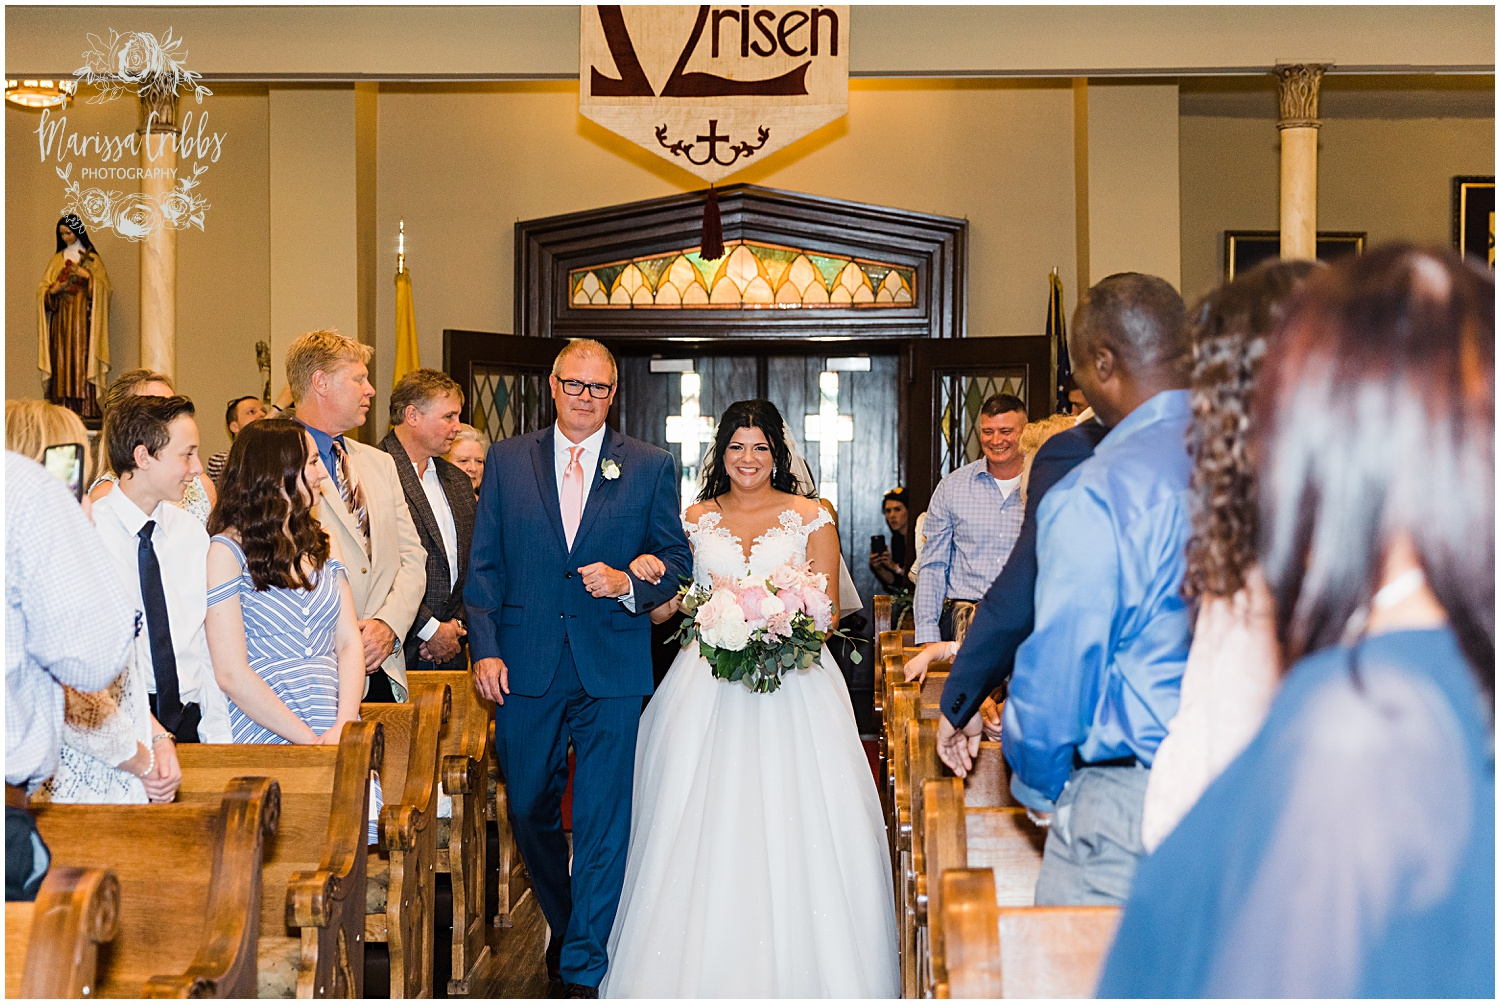 CASEY & GOLDIE MARRIED BLOG | MARISSA CRIBBS PHOTOGRAPHY_7985.jpg